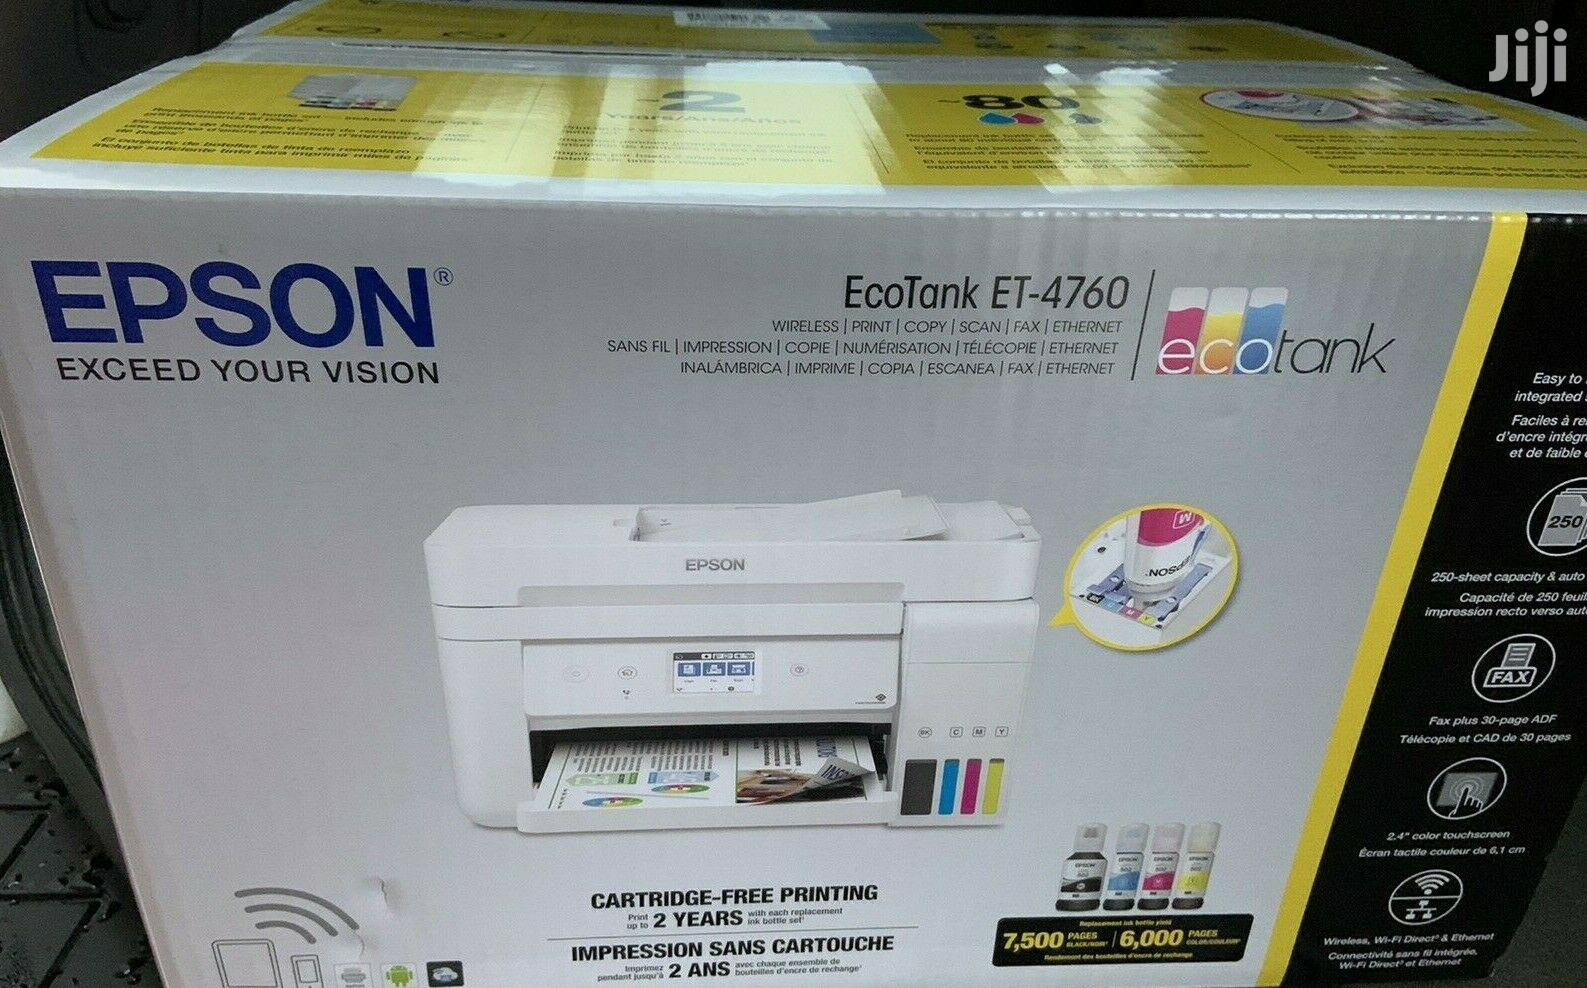 Epson Ecotank Et 4760 Workforce 3620 Replacement In Nairobi Central Printers Scanners Print Mart Jiji Co Ke For Sale In Nairobi Central Buy Printers Scanners From Print Mart On